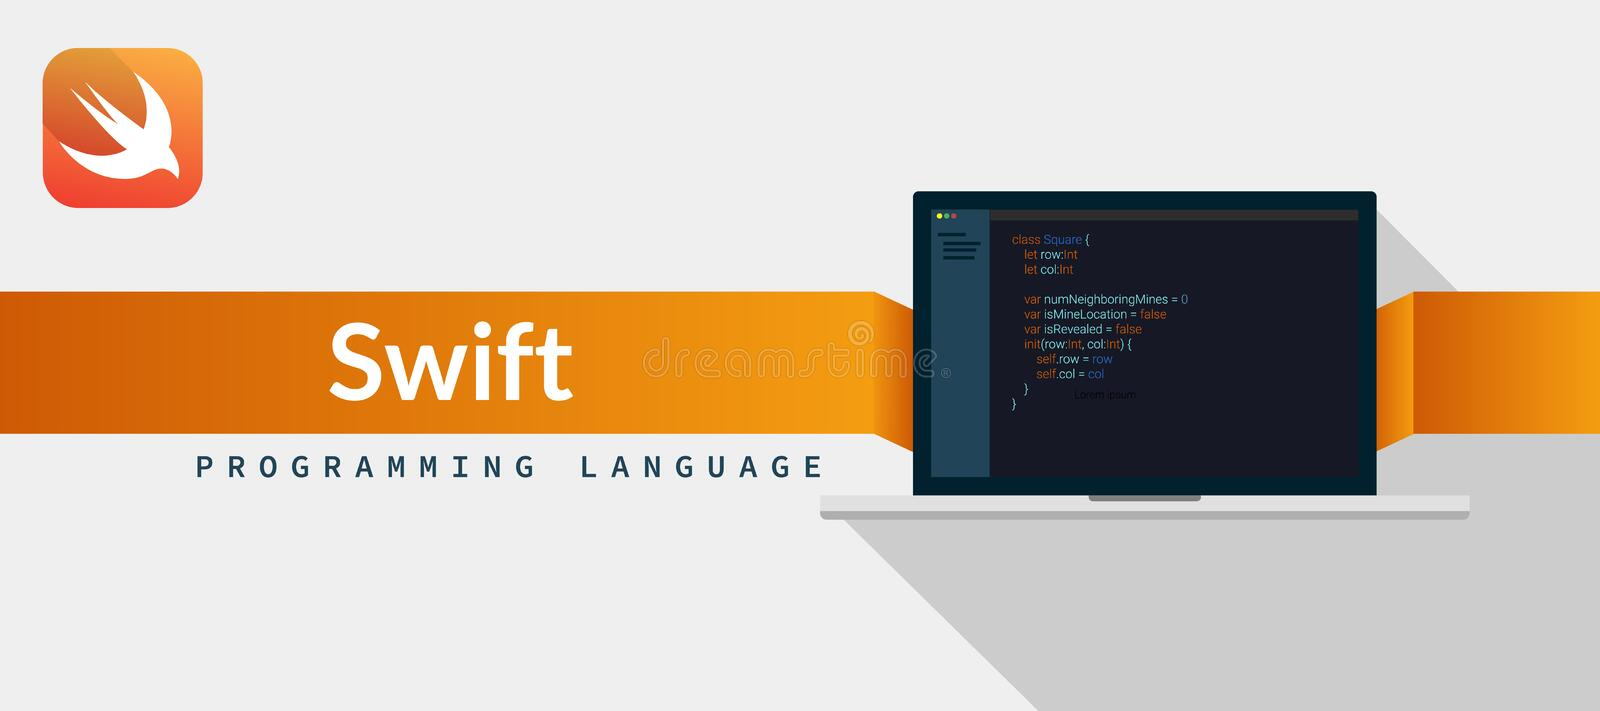 Swift programming language for iOS, Mac OS from apple with script code on laptop screen, programming language code illustration.  stock illustration